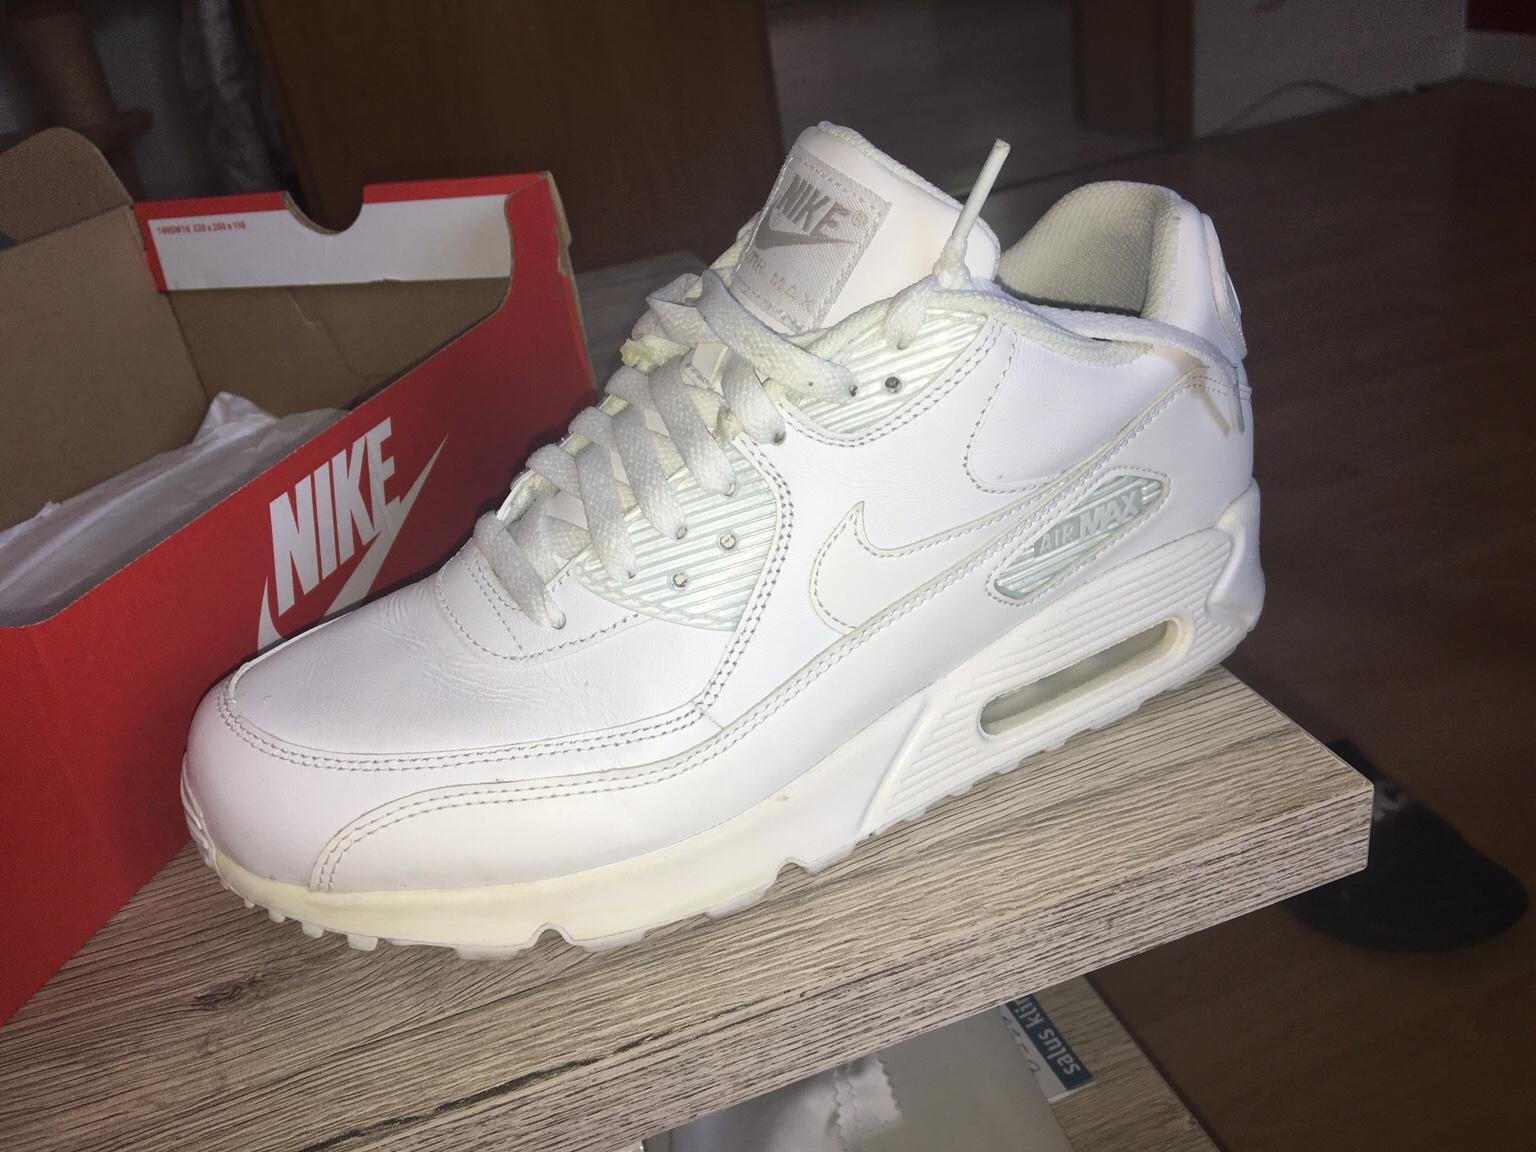 Nike air Max 90 Leder weiß in 46240 Bottrop for €80.00 for